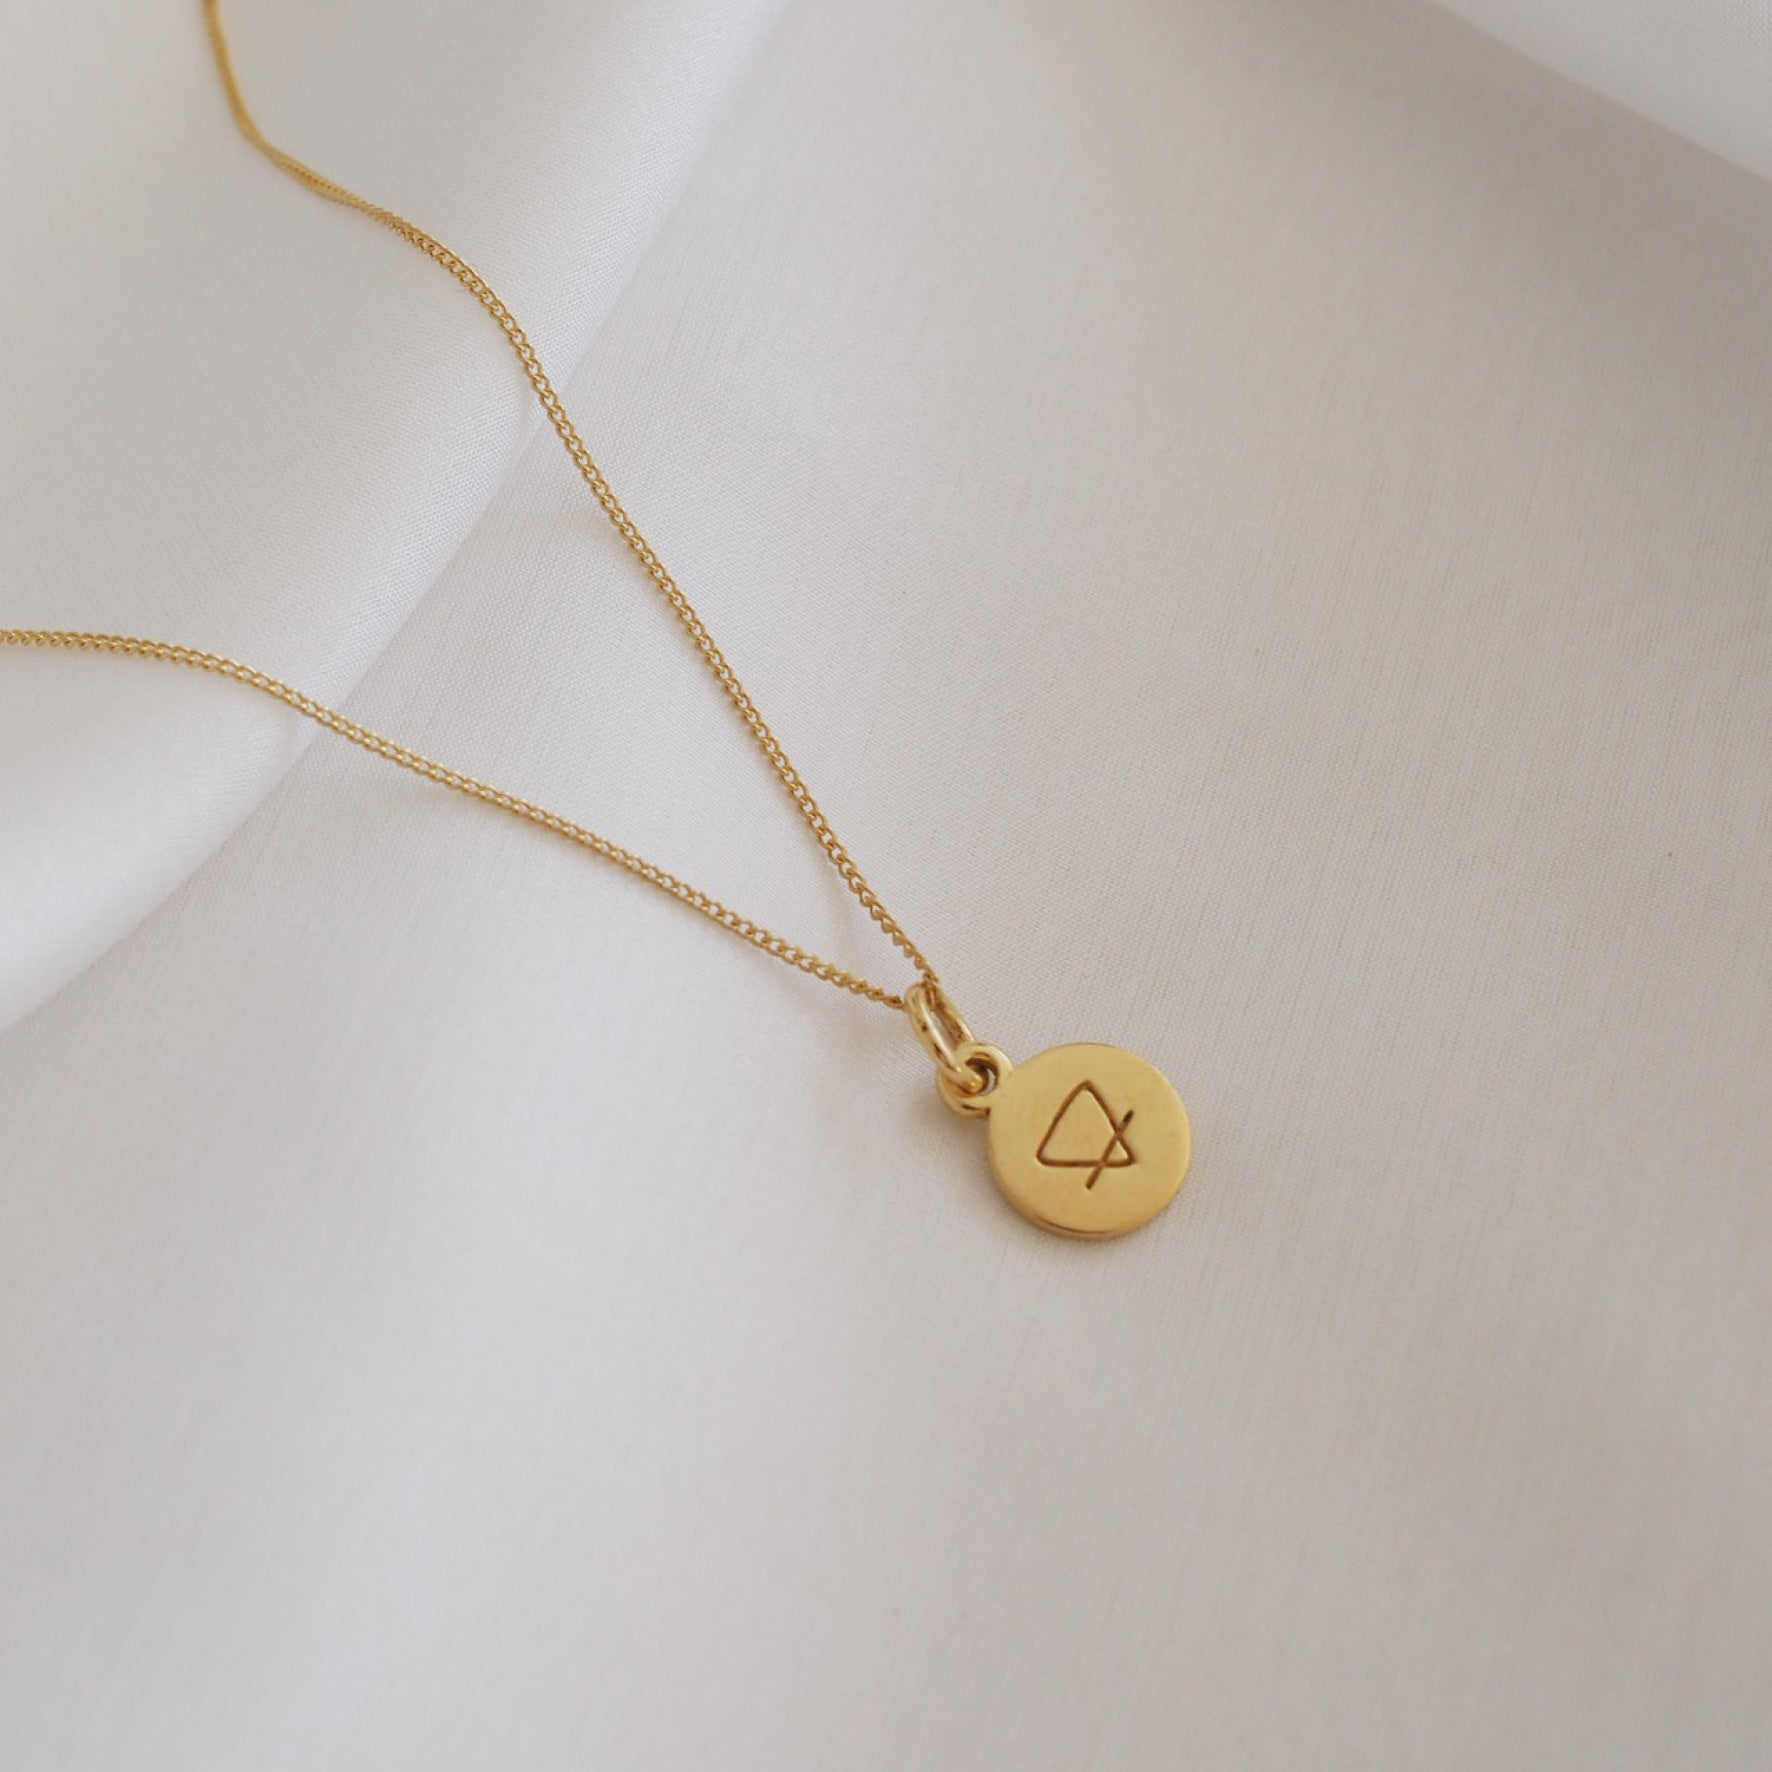 Earth Sign Mini Charm - Gold